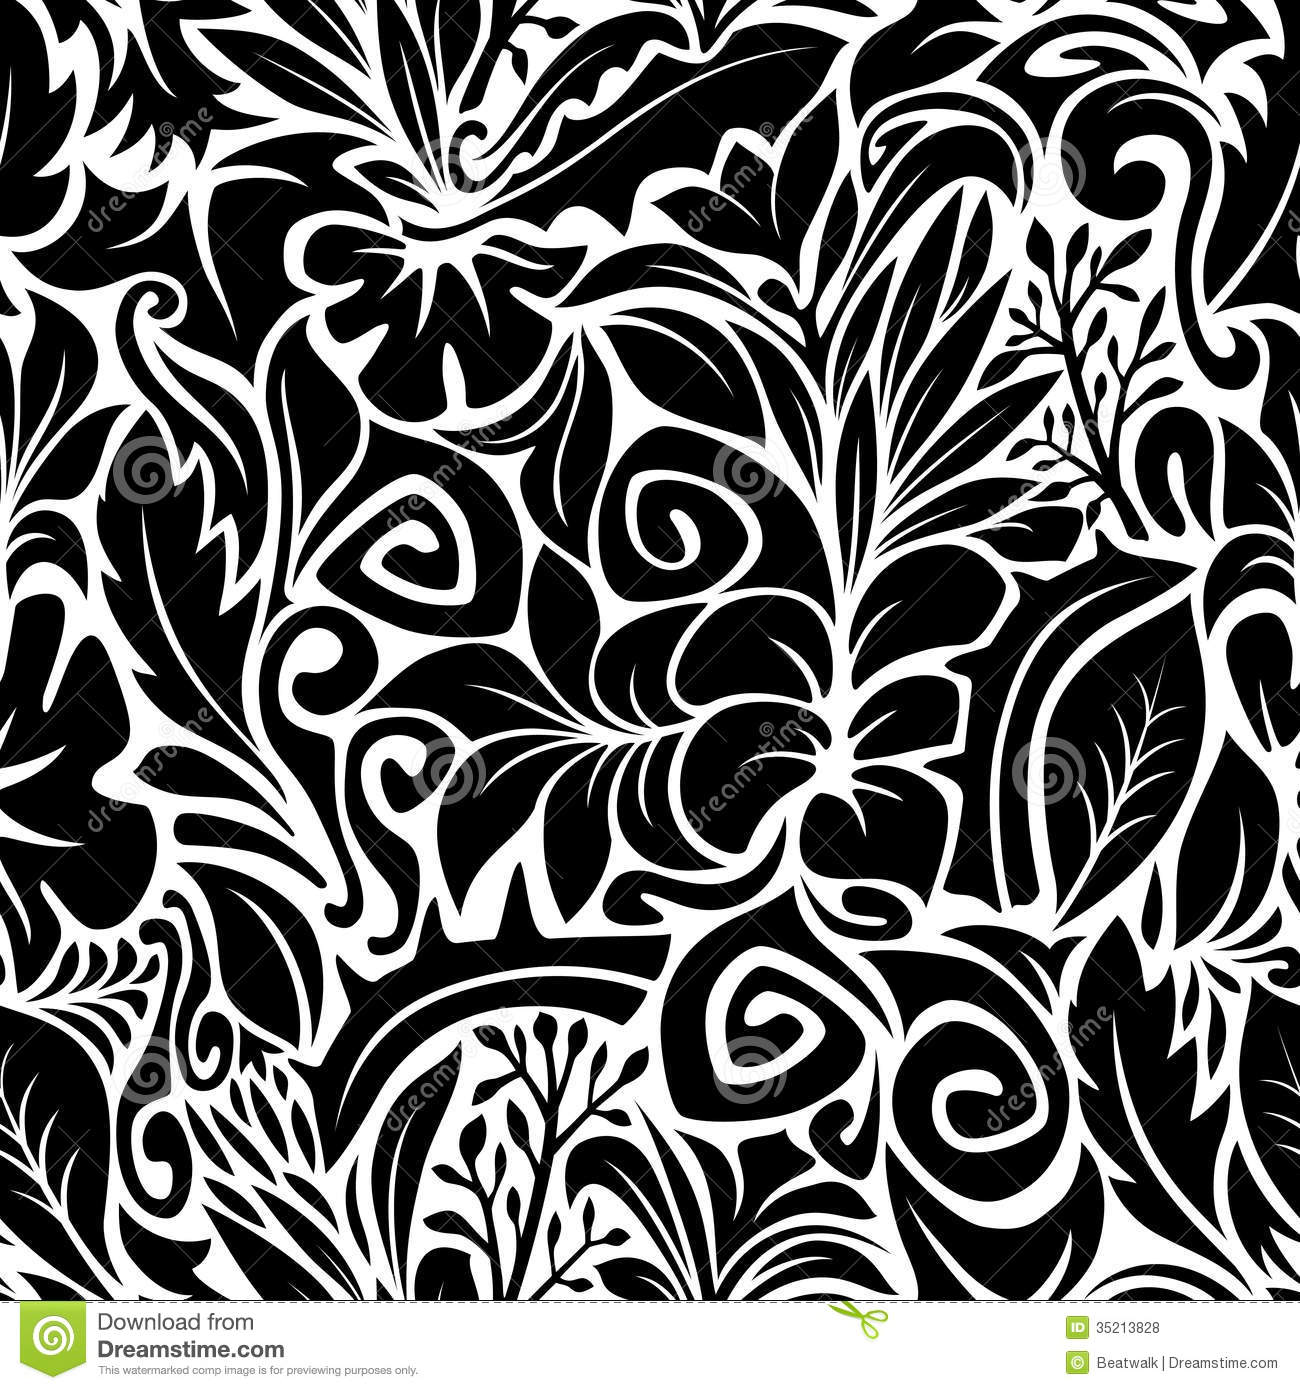 Cool black and white patterns vector - photo#19